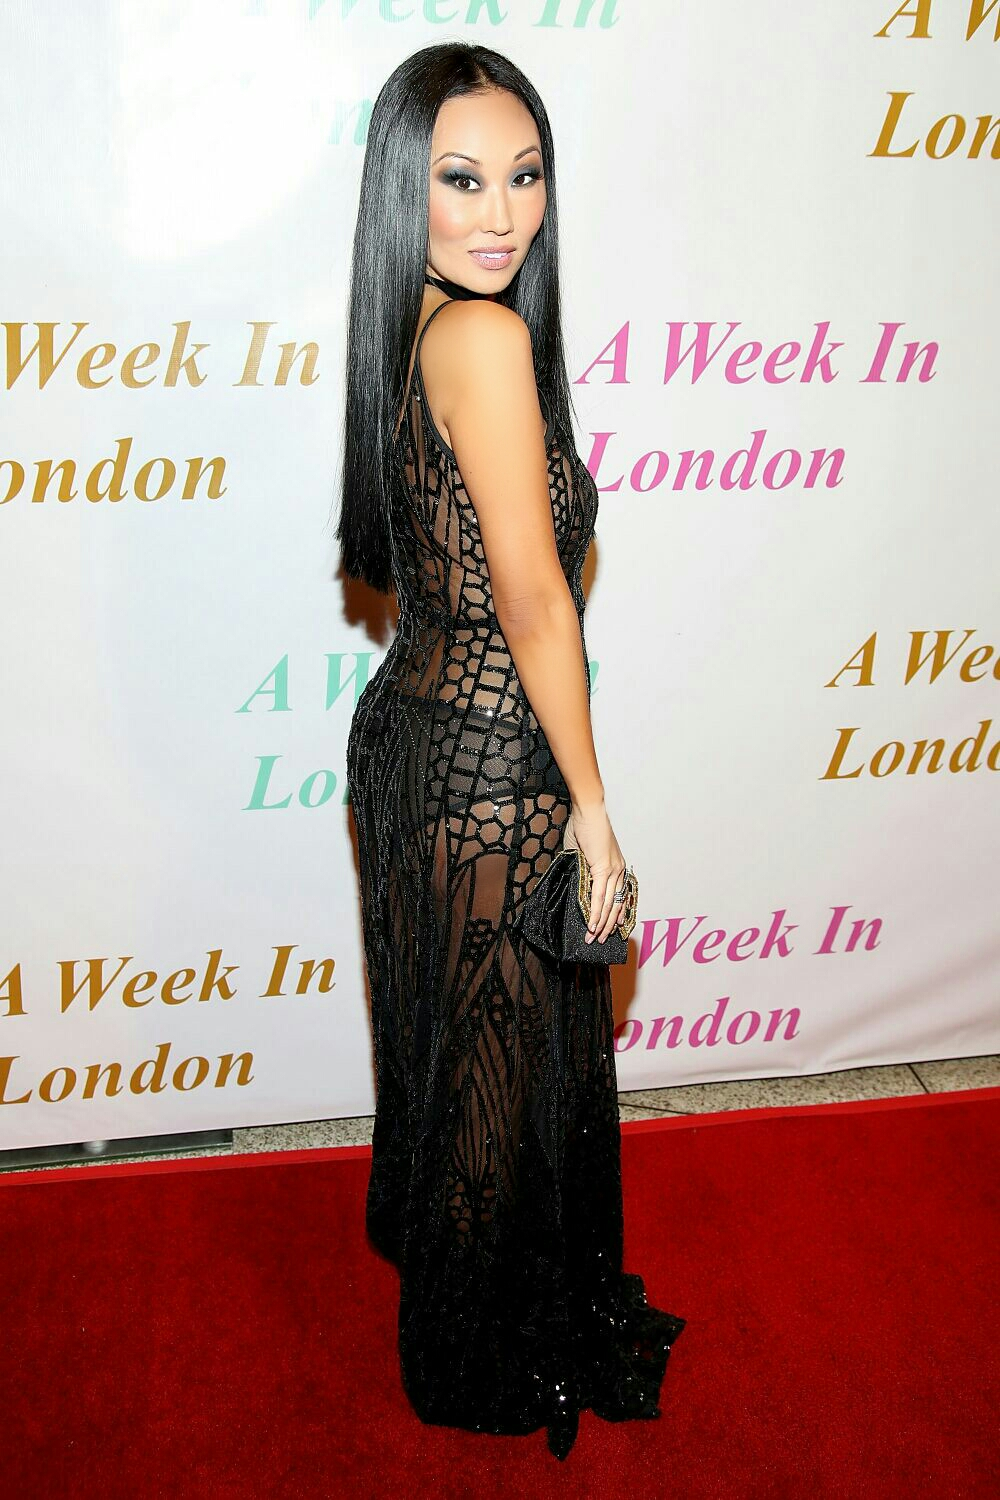 old-hollywood-glamour-shines-at-the-a-week-in-london-premiere-viva-glam-magazine-candace-kita4